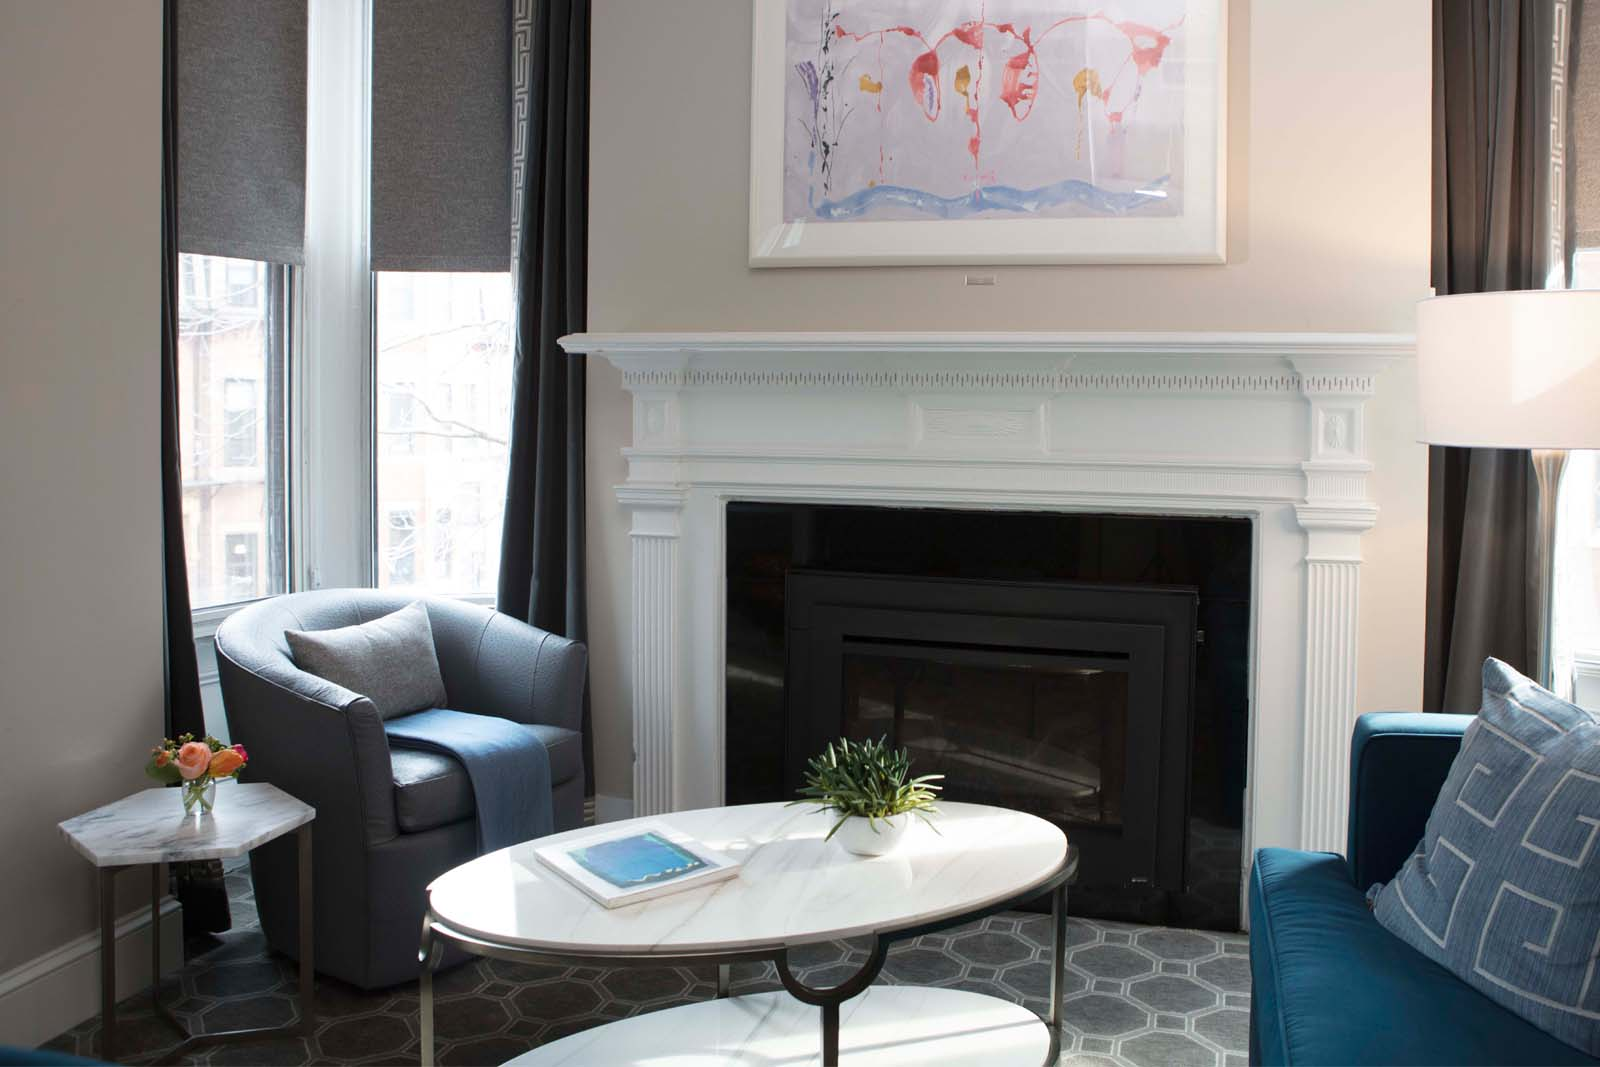 Warm and inviting sitting area with a fire place and artwork in the living room of the queen suite